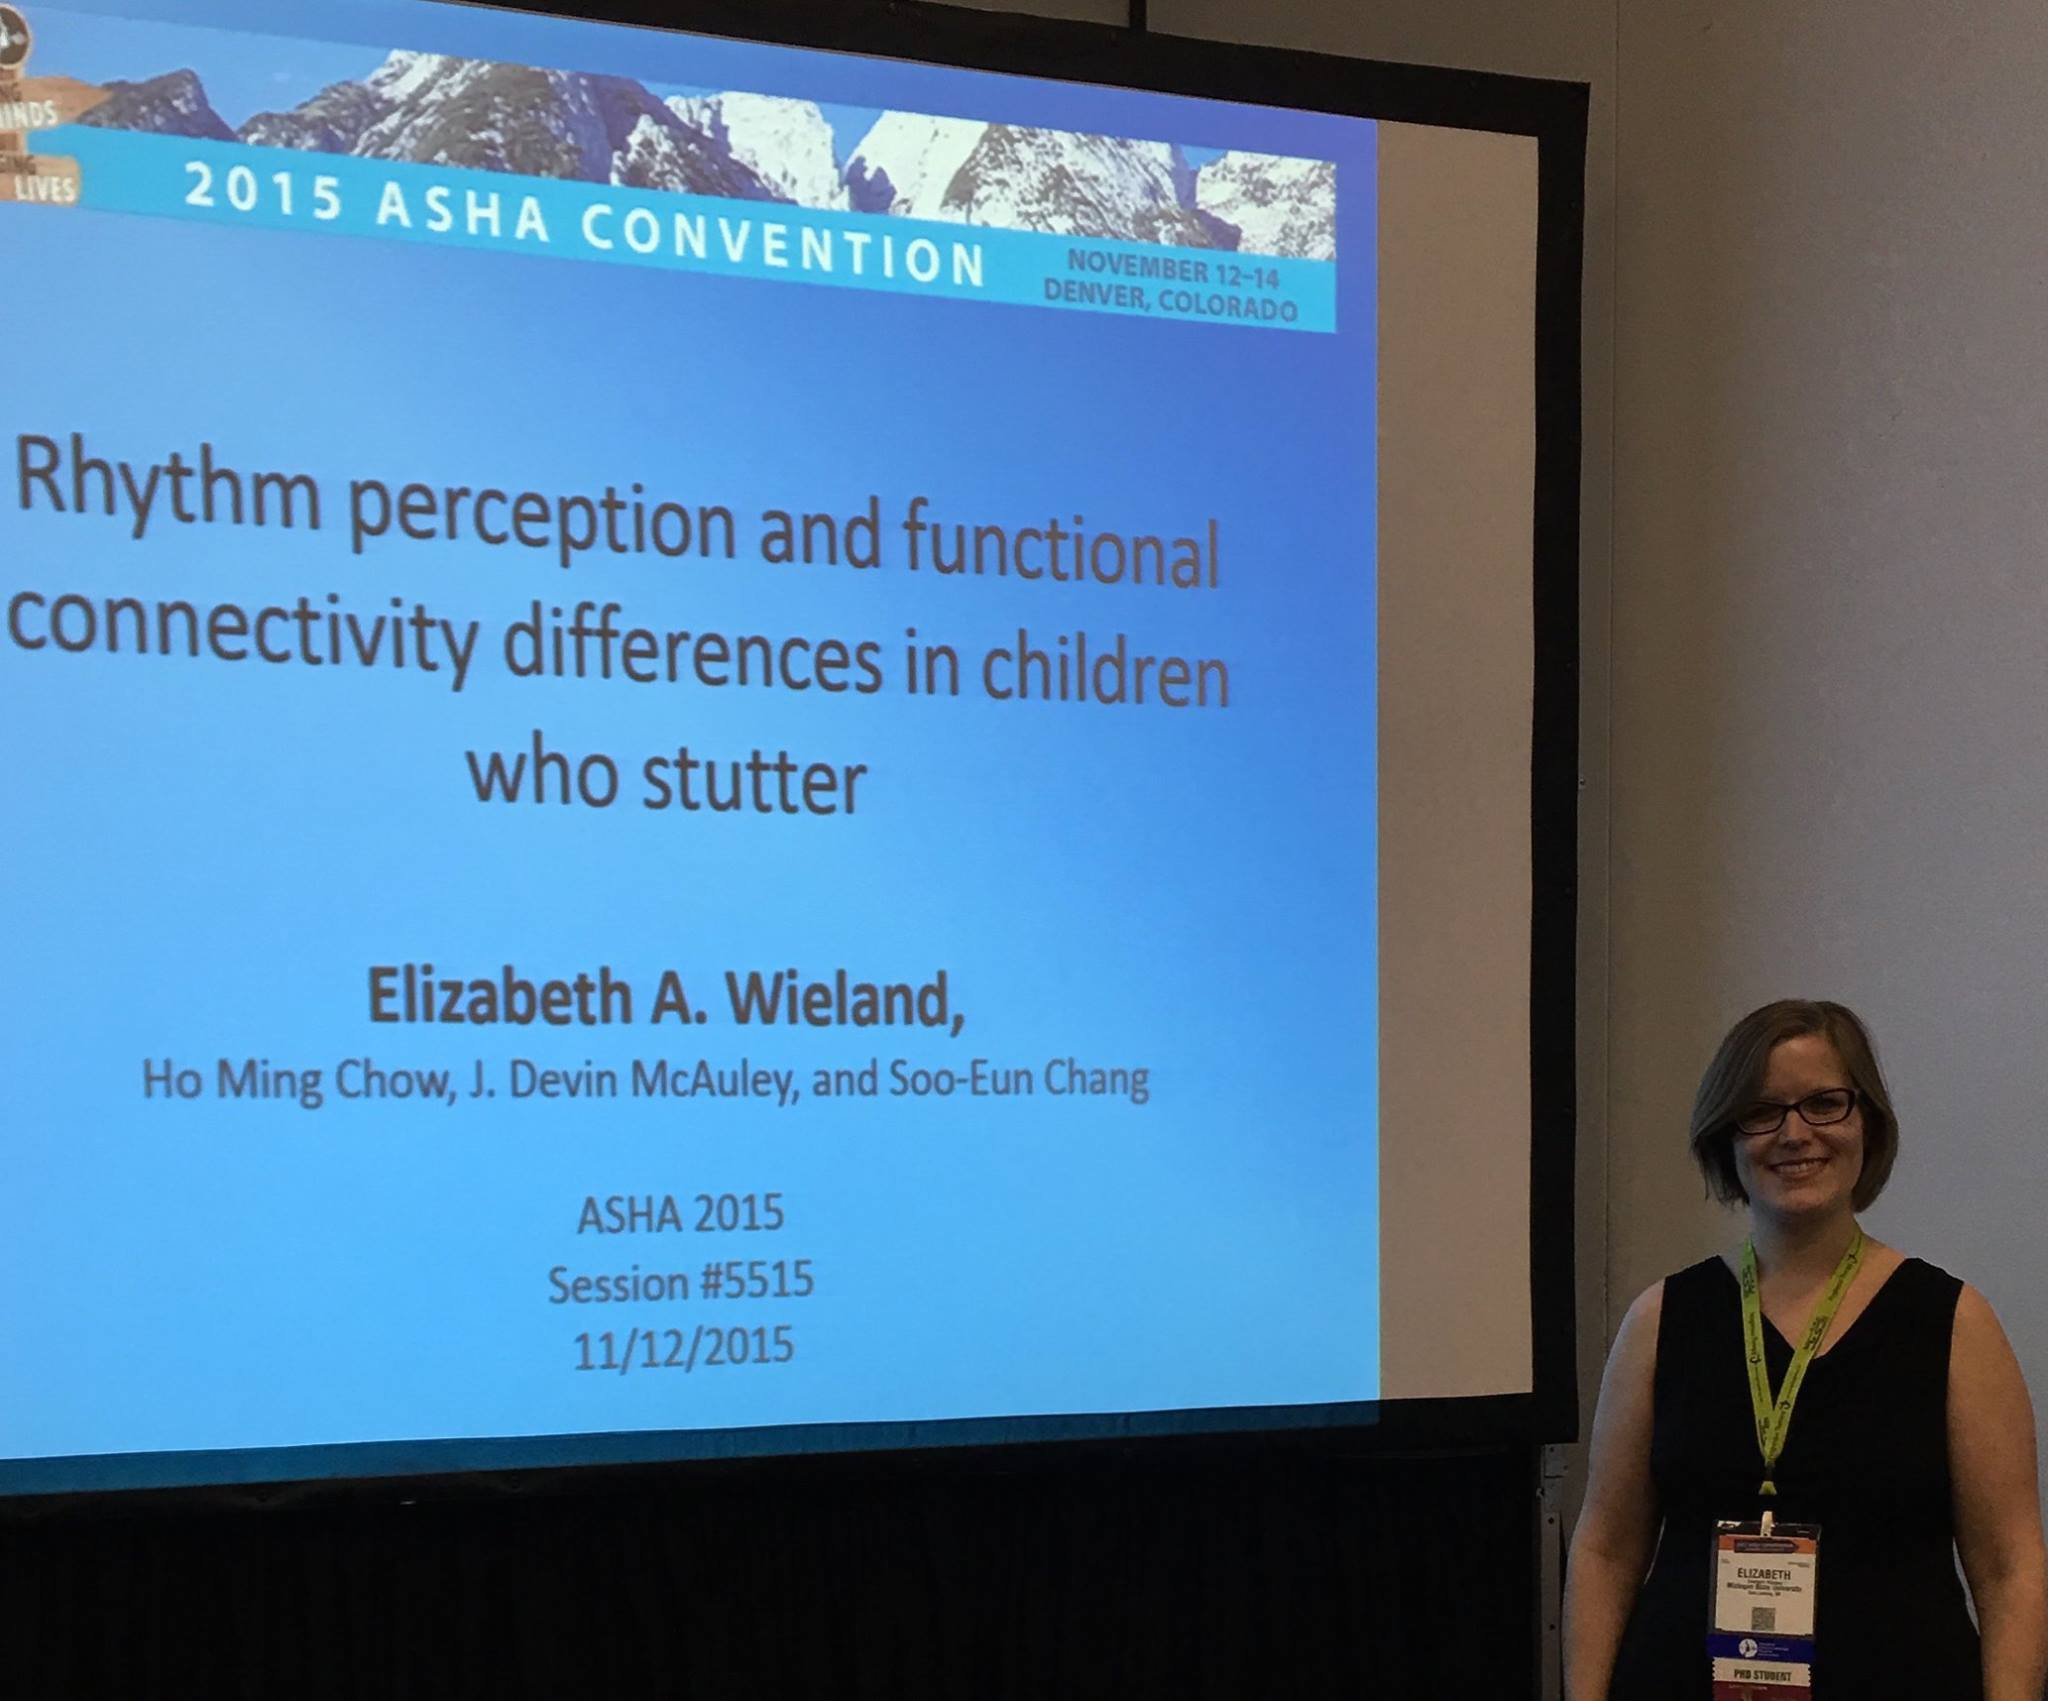 Liz Wieland, doctoral student and awardee of the prestigious New Century Scholars doctoral scholarship from the ASHFoundation this year, presented an excellent technical talk at ASHA.